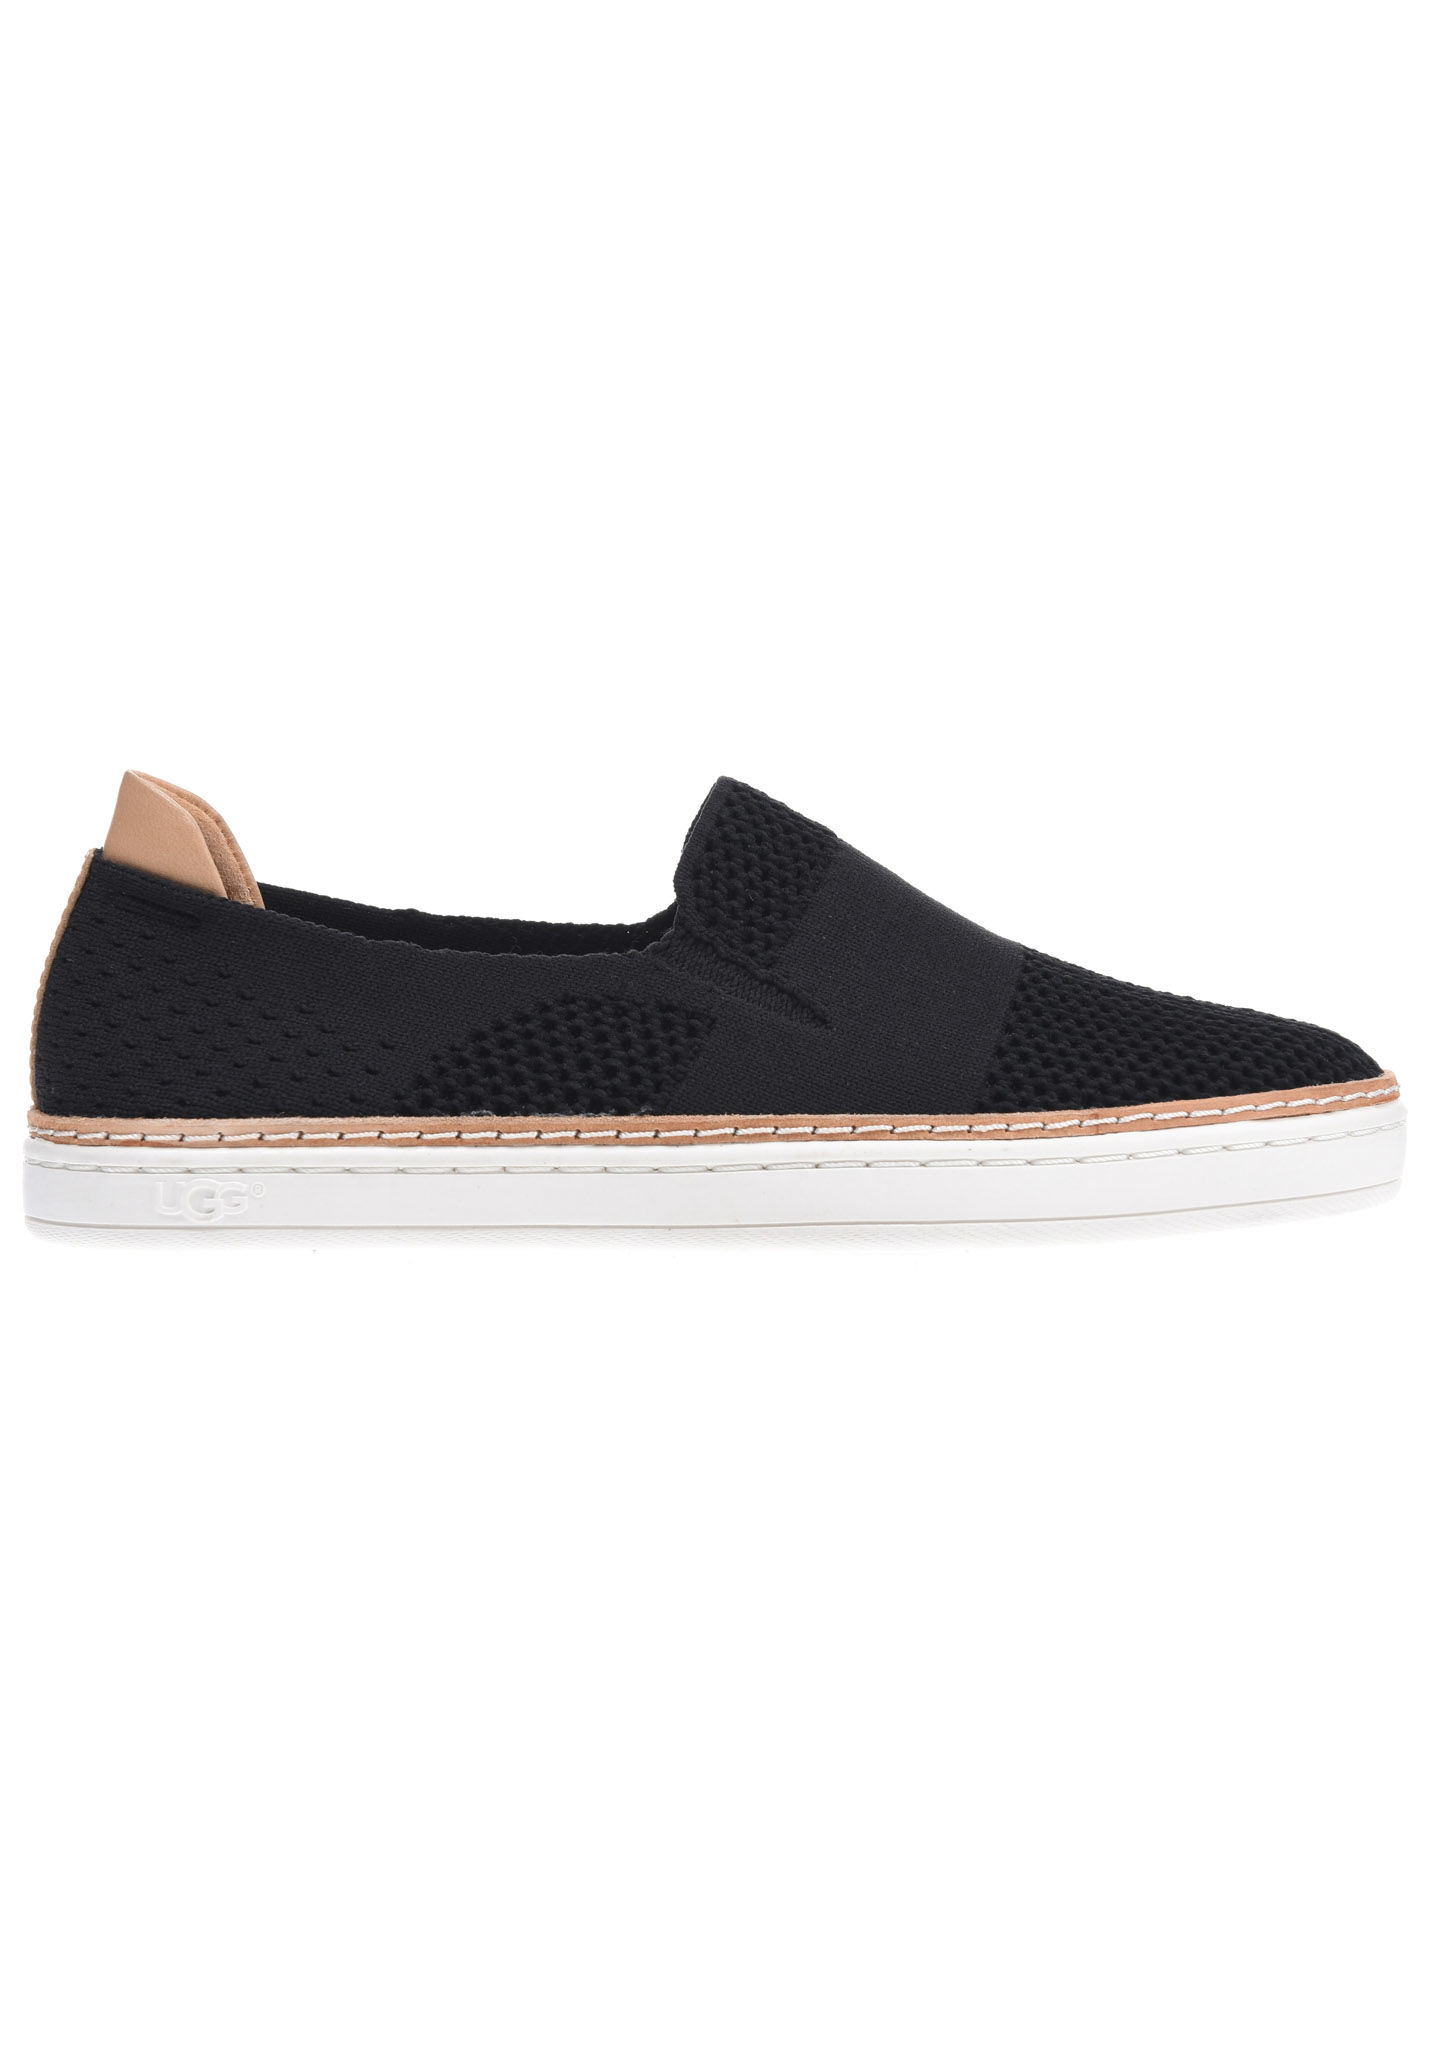 bd3d07ebdb9 UGG Sammy - Slip-On per Donna - Nero